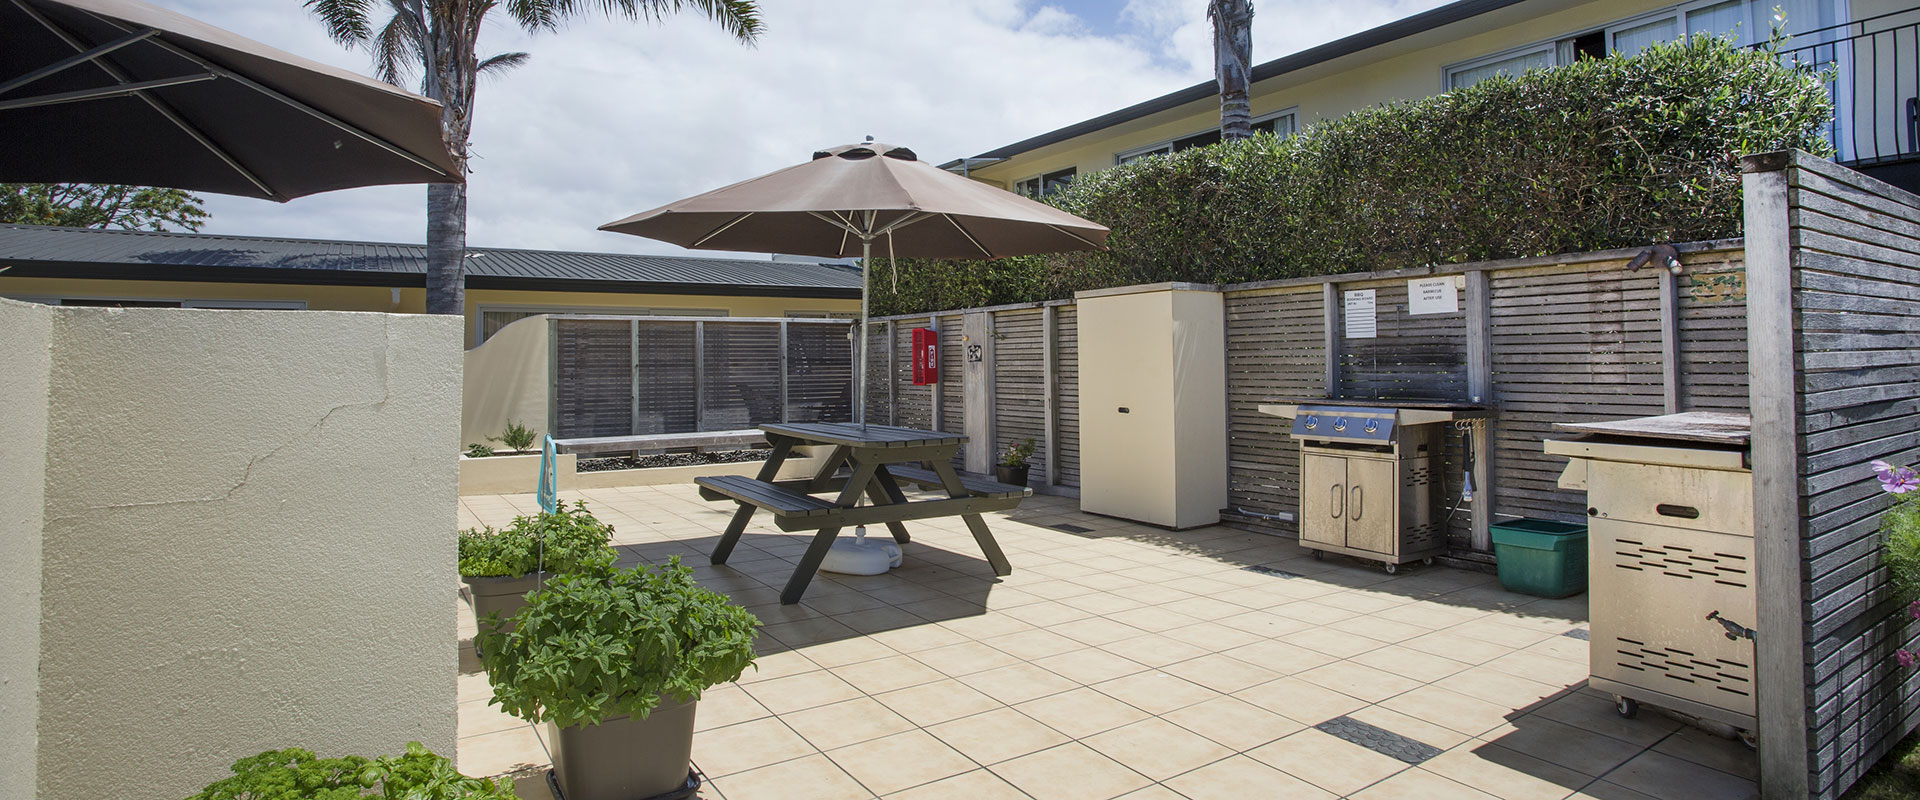 BBQ area with outdoor seating